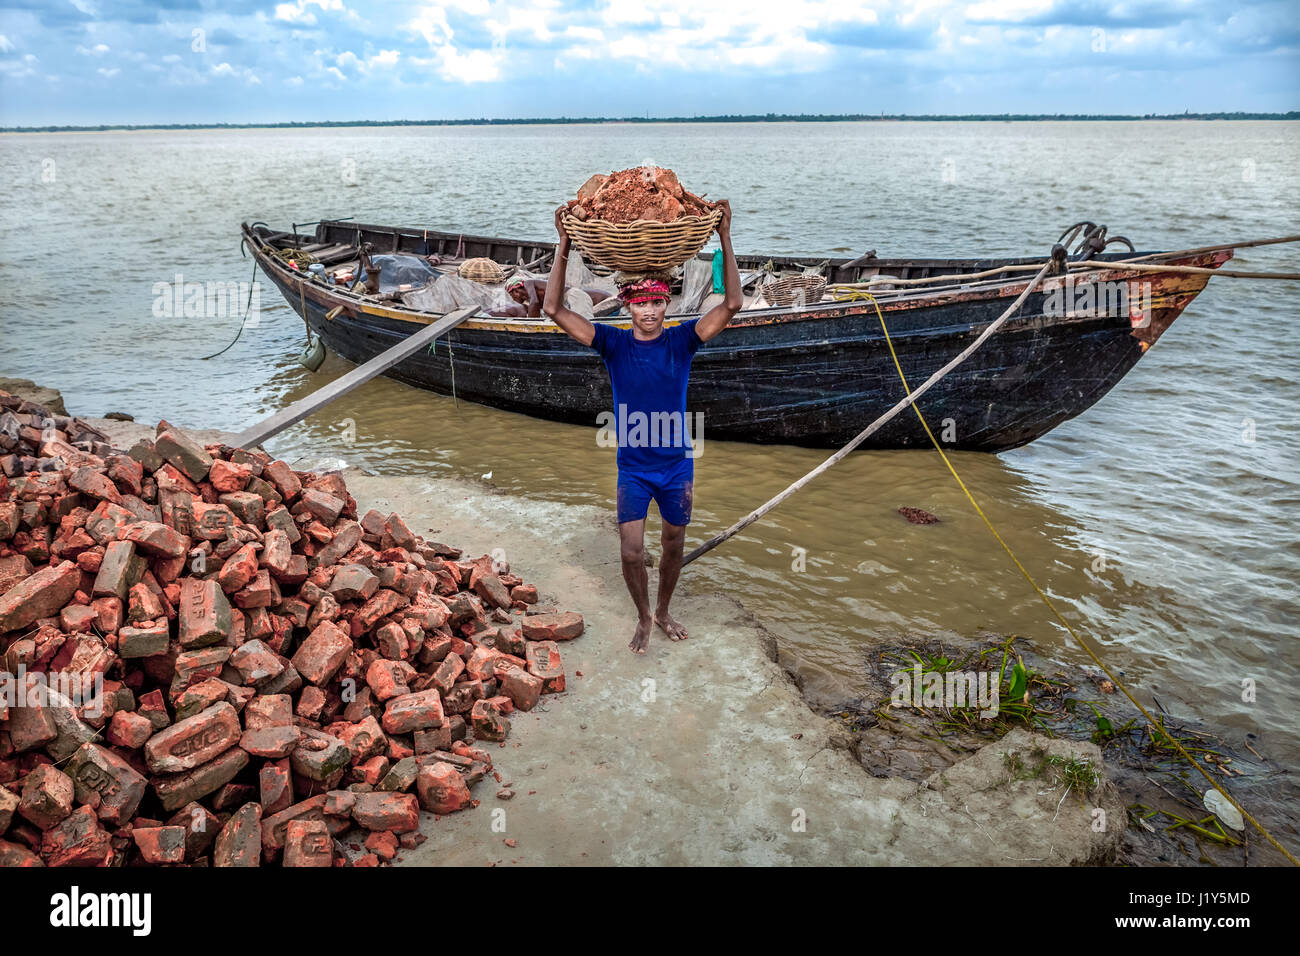 A worker transporting red bricks from a wooden boat onto the Rupnarayan riverbank in Tamluk, West Bengal, India. Stock Photo